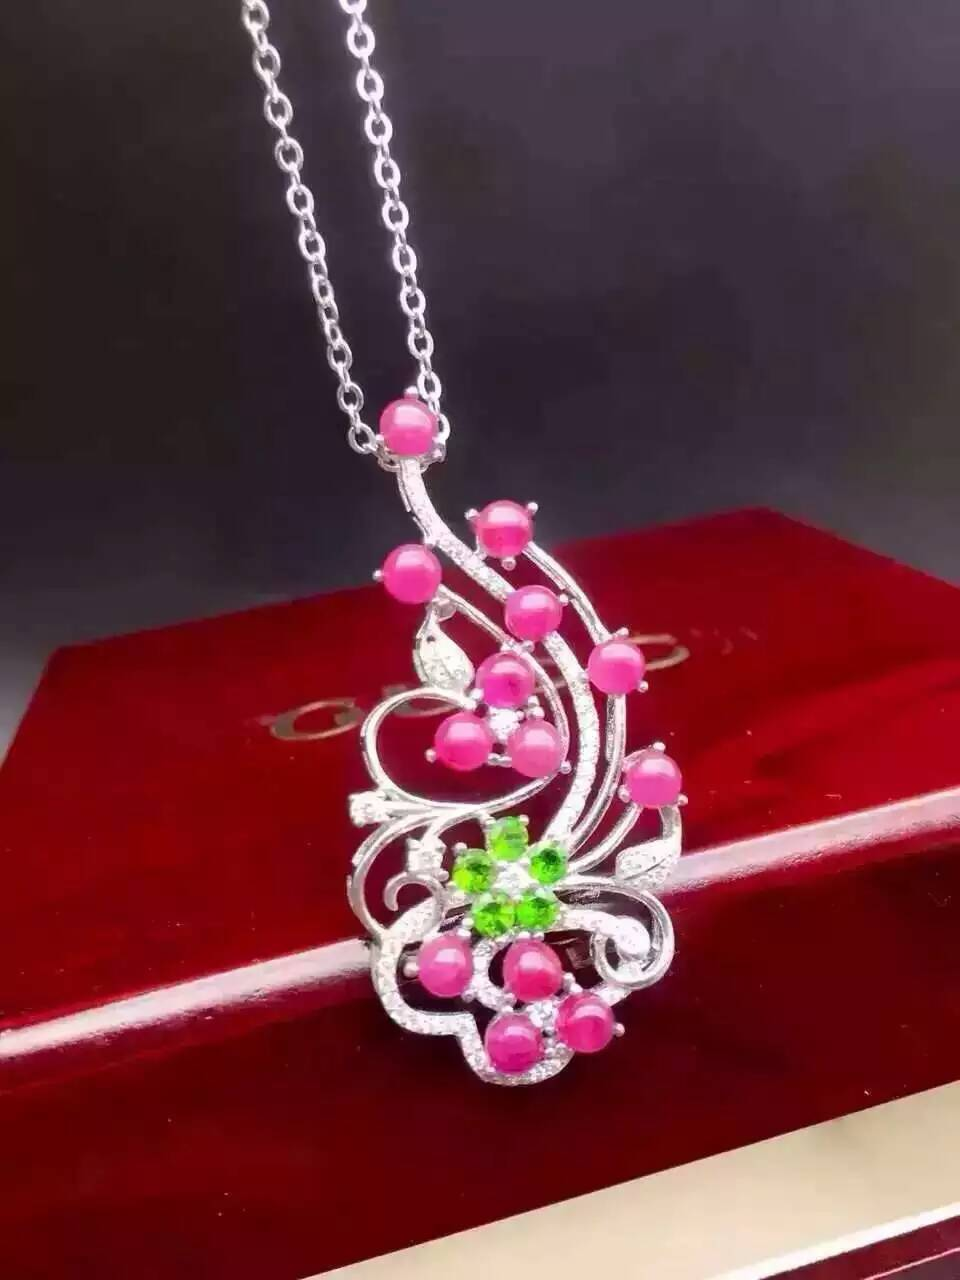 natural red ruby pendant S925 silver Natural gemstone Pendant Necklace trendy big Luxury Flower Leaves women wedding jewelrynatural red ruby pendant S925 silver Natural gemstone Pendant Necklace trendy big Luxury Flower Leaves women wedding jewelry